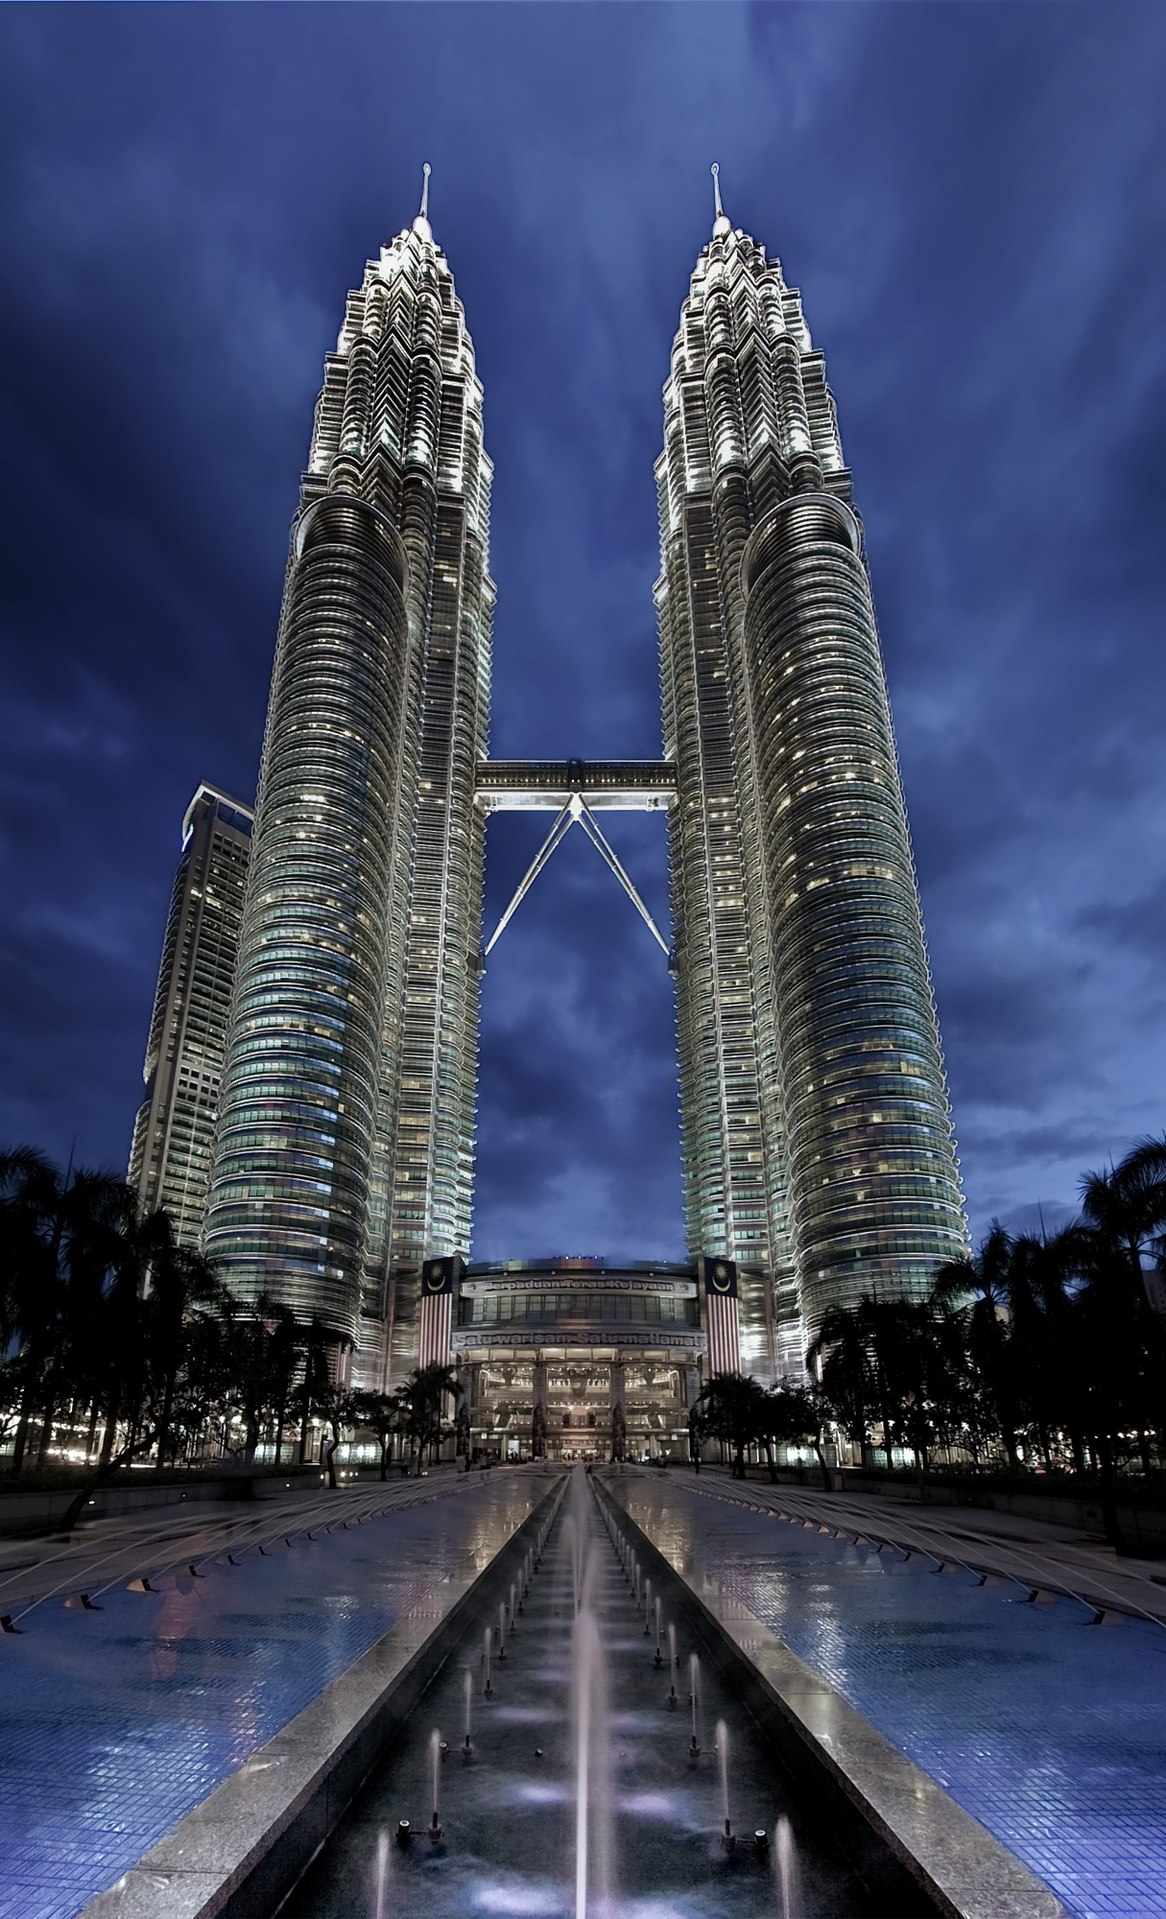 https://upload.wikimedia.org/wikipedia/commons/thumb/8/85/Petronas_Panorama_II.jpg/1166px-Petronas_Panorama_II.jpg